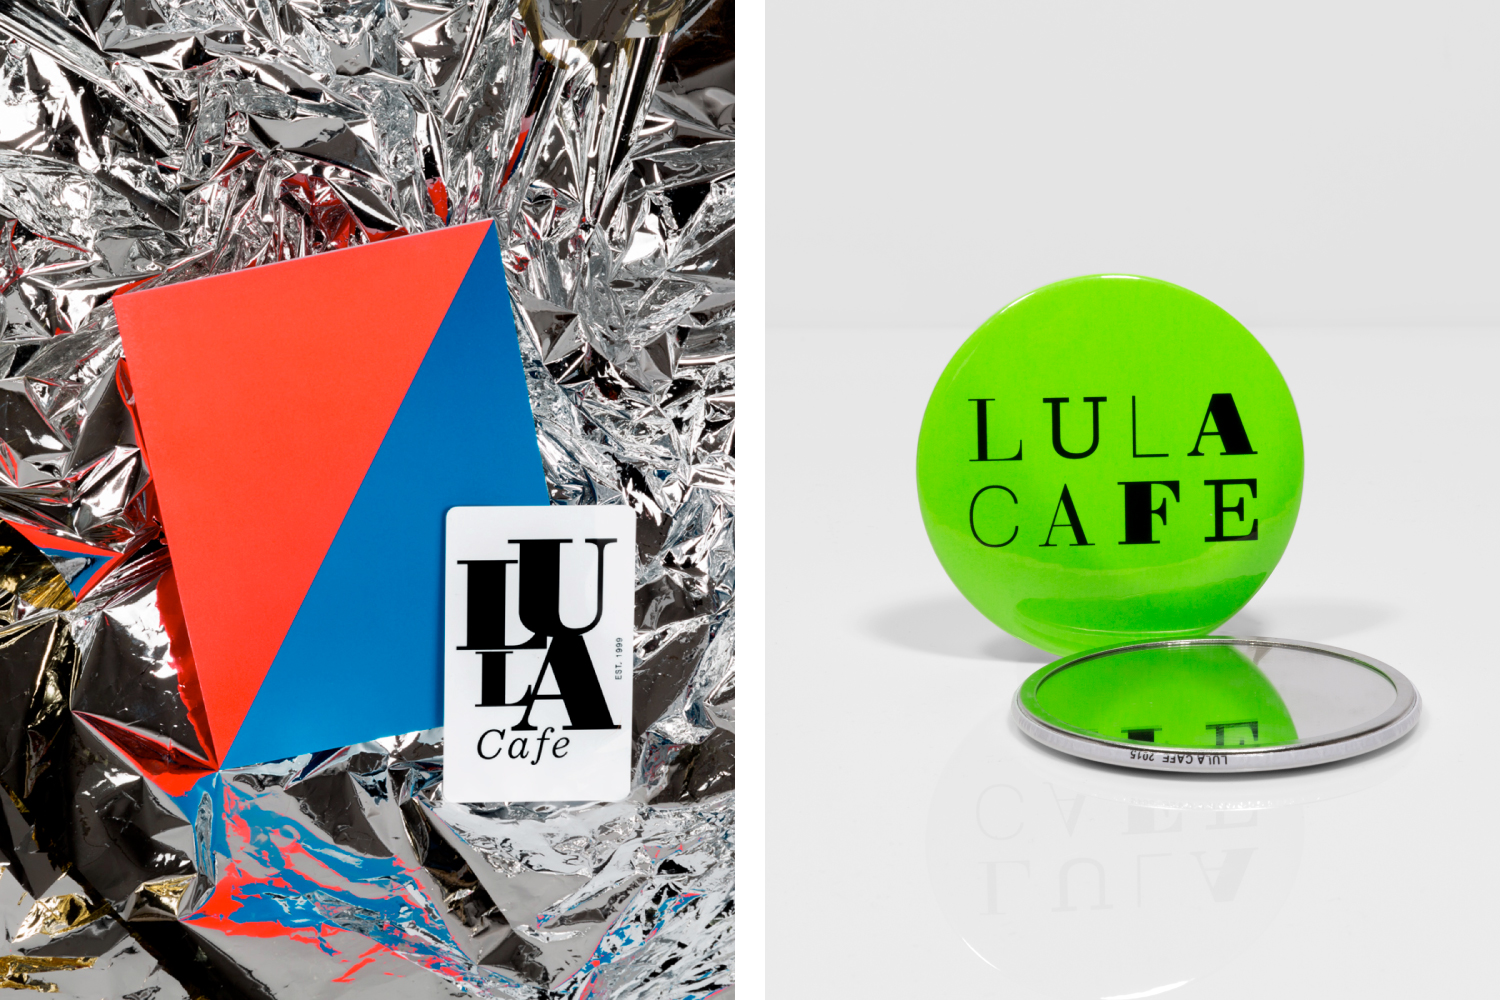 Lula Cafe gift card design and merchandise